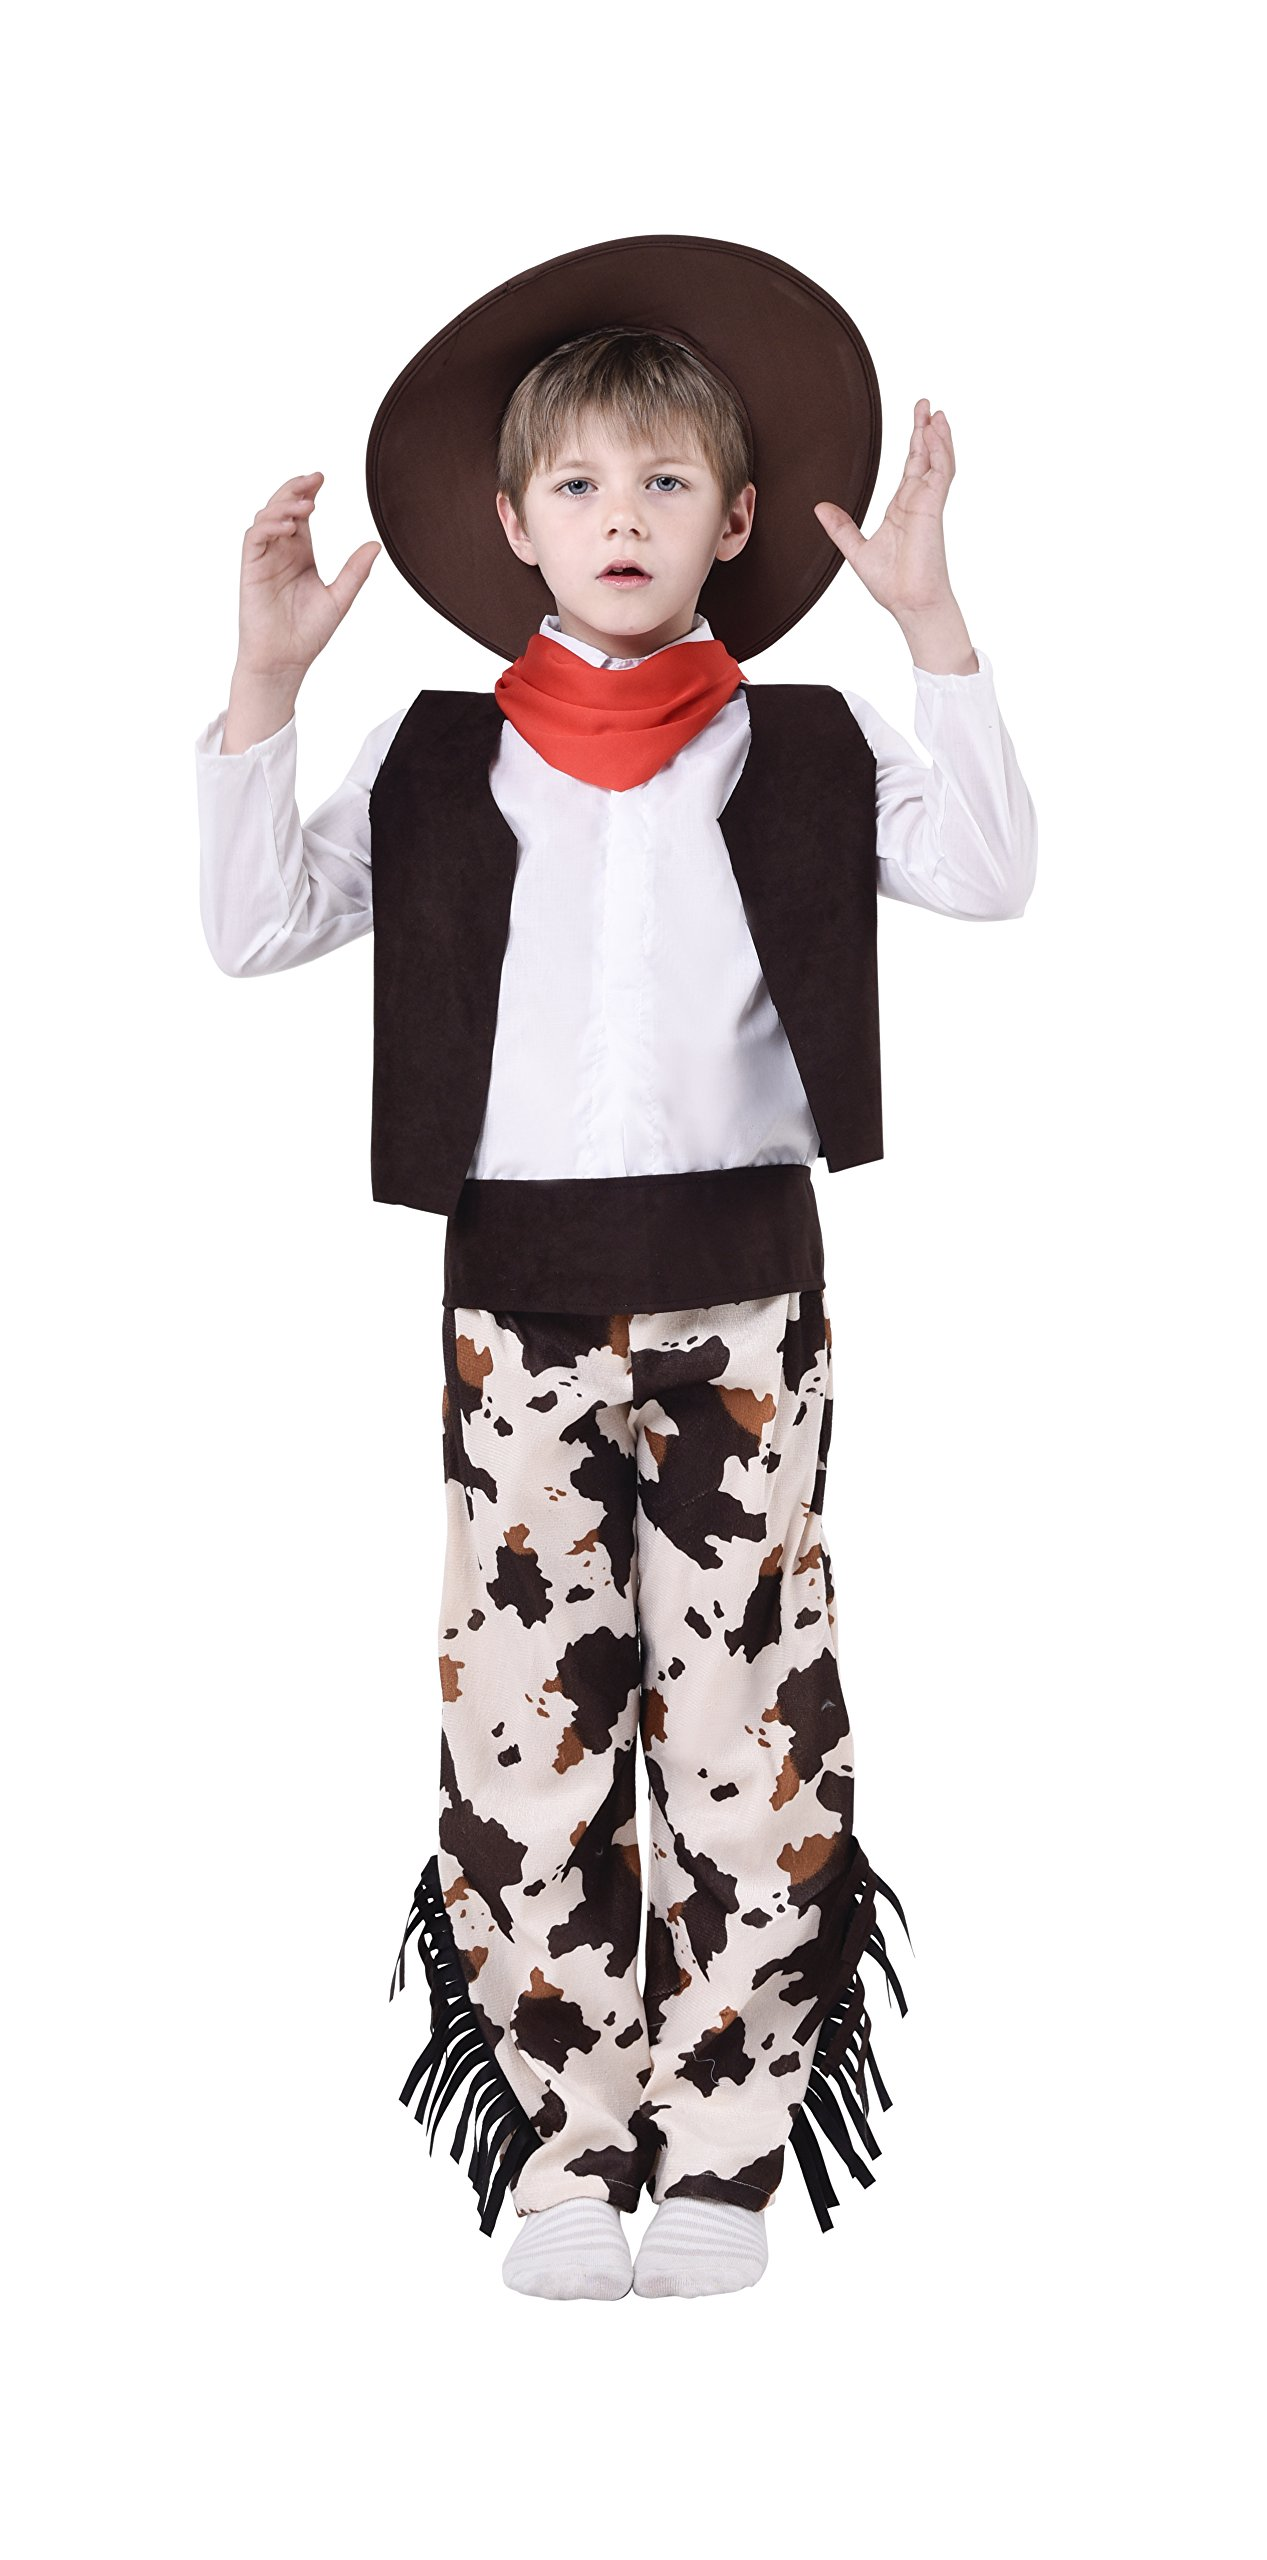 Blue Panda Cowboy Costume for Kids - 5-Piece Western Cowboy Outfit Dress-up for Boys, Age 5-7